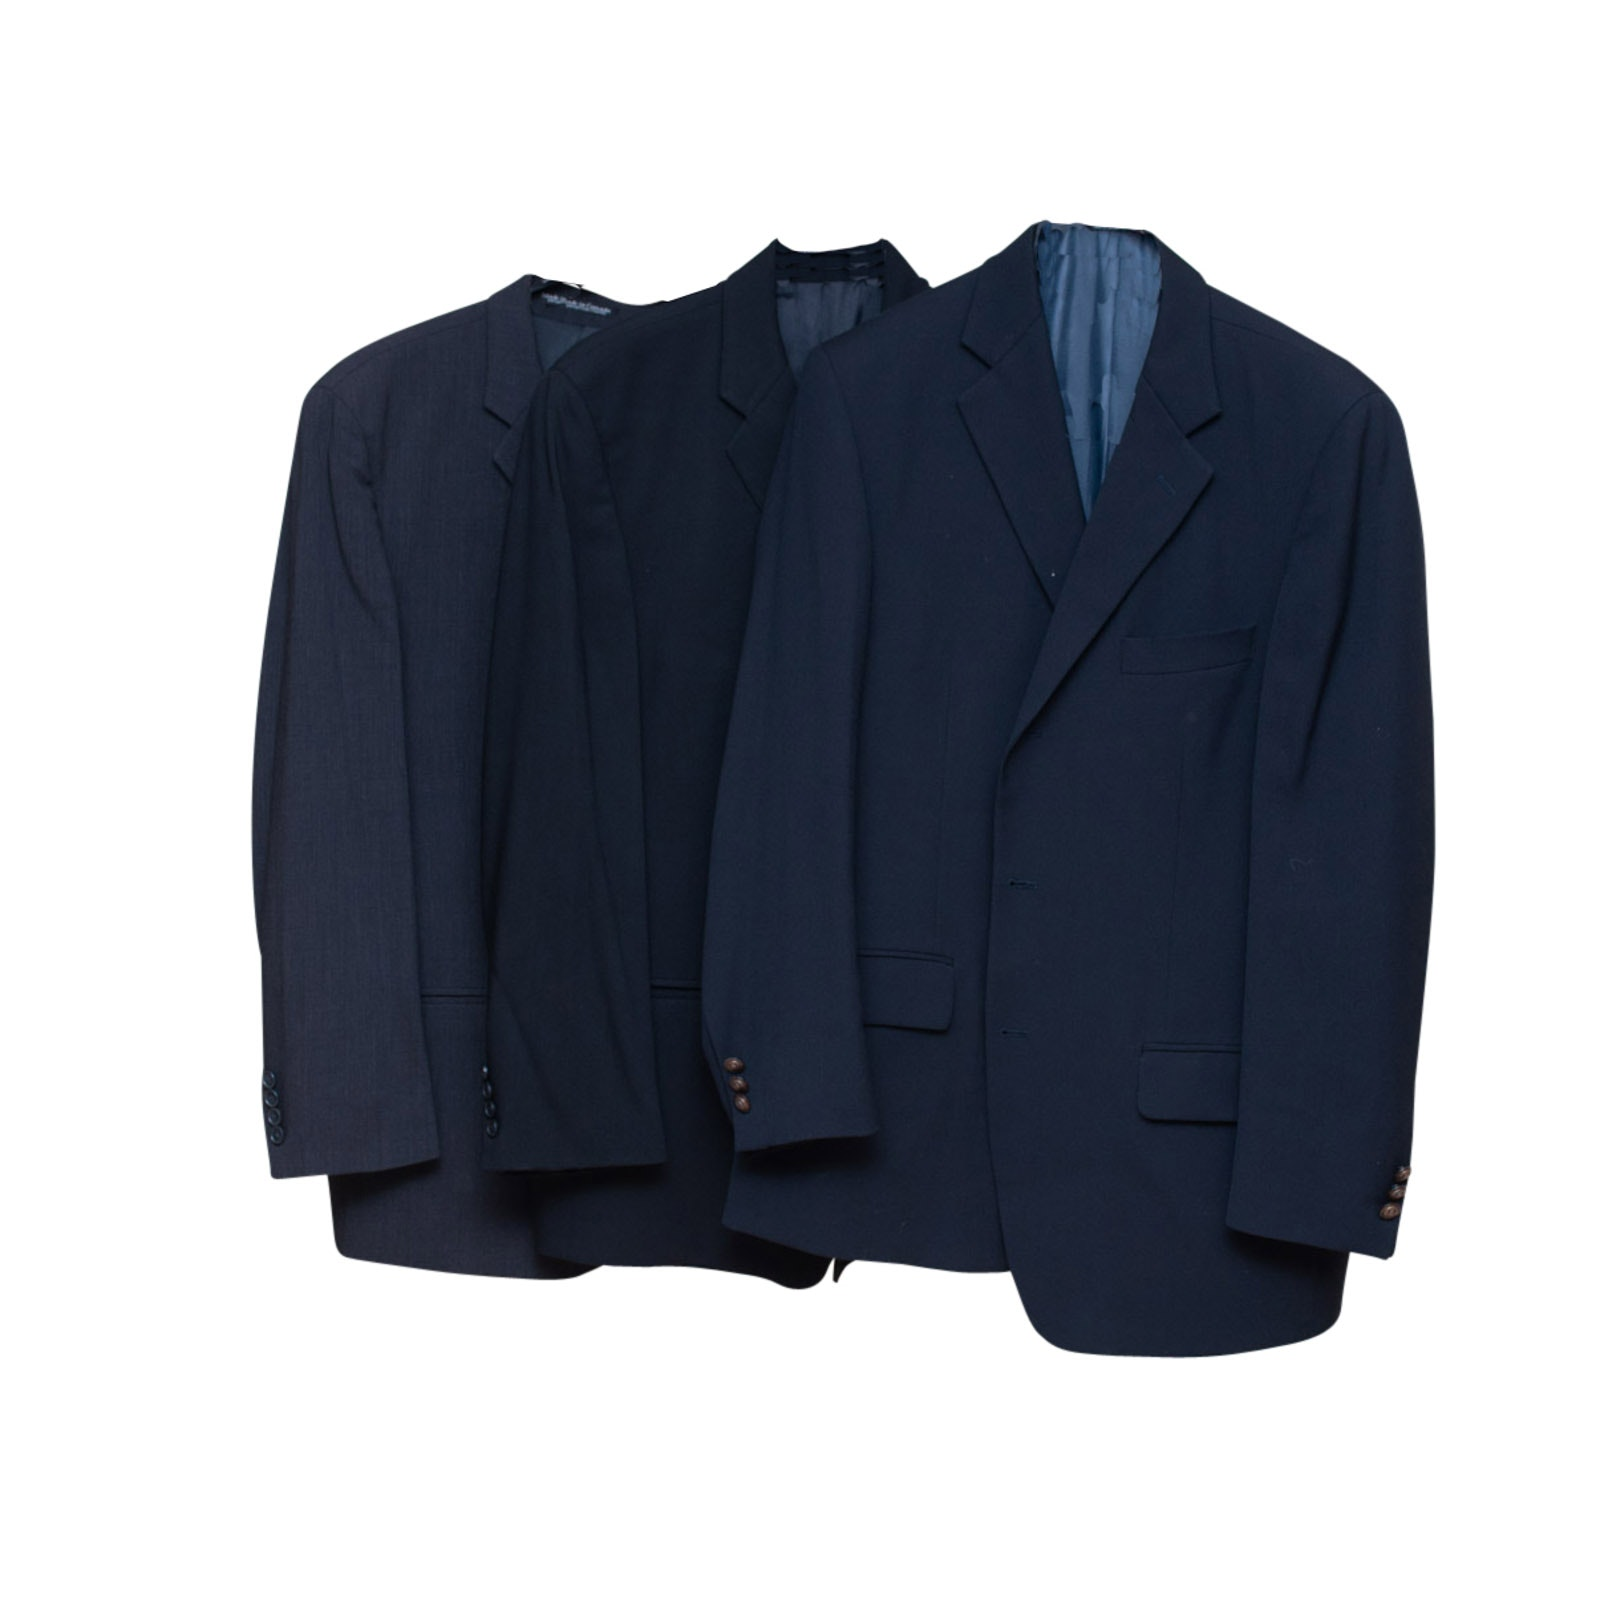 Men's Suits and Jacket Including Alfred by Alfred Sung and Brandini